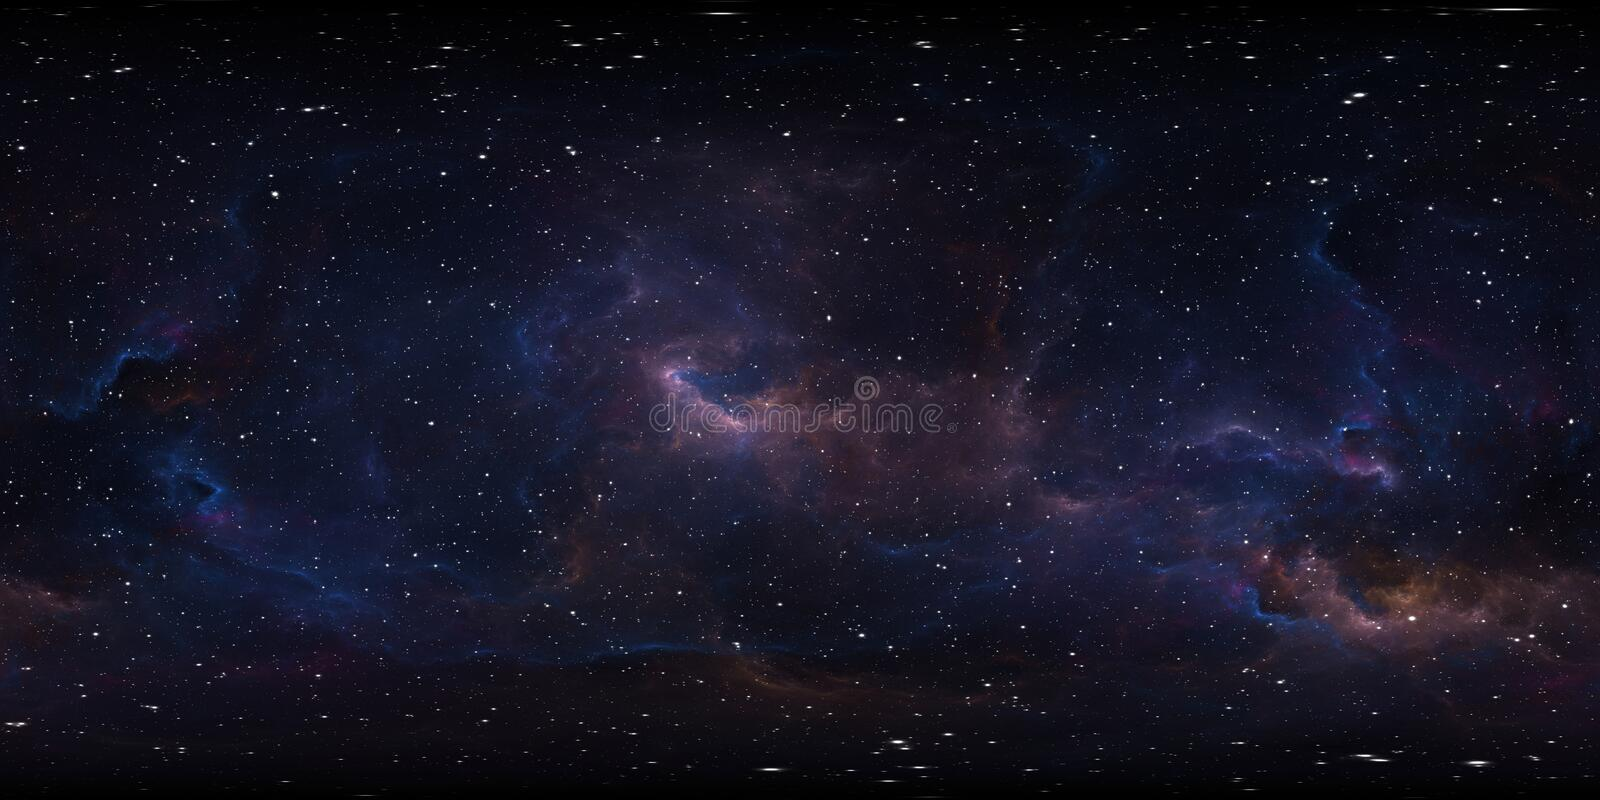 Space background with nebula and stars. Environment 360 HDRI map. Equirectangular projection, spherical panorama stock illustration